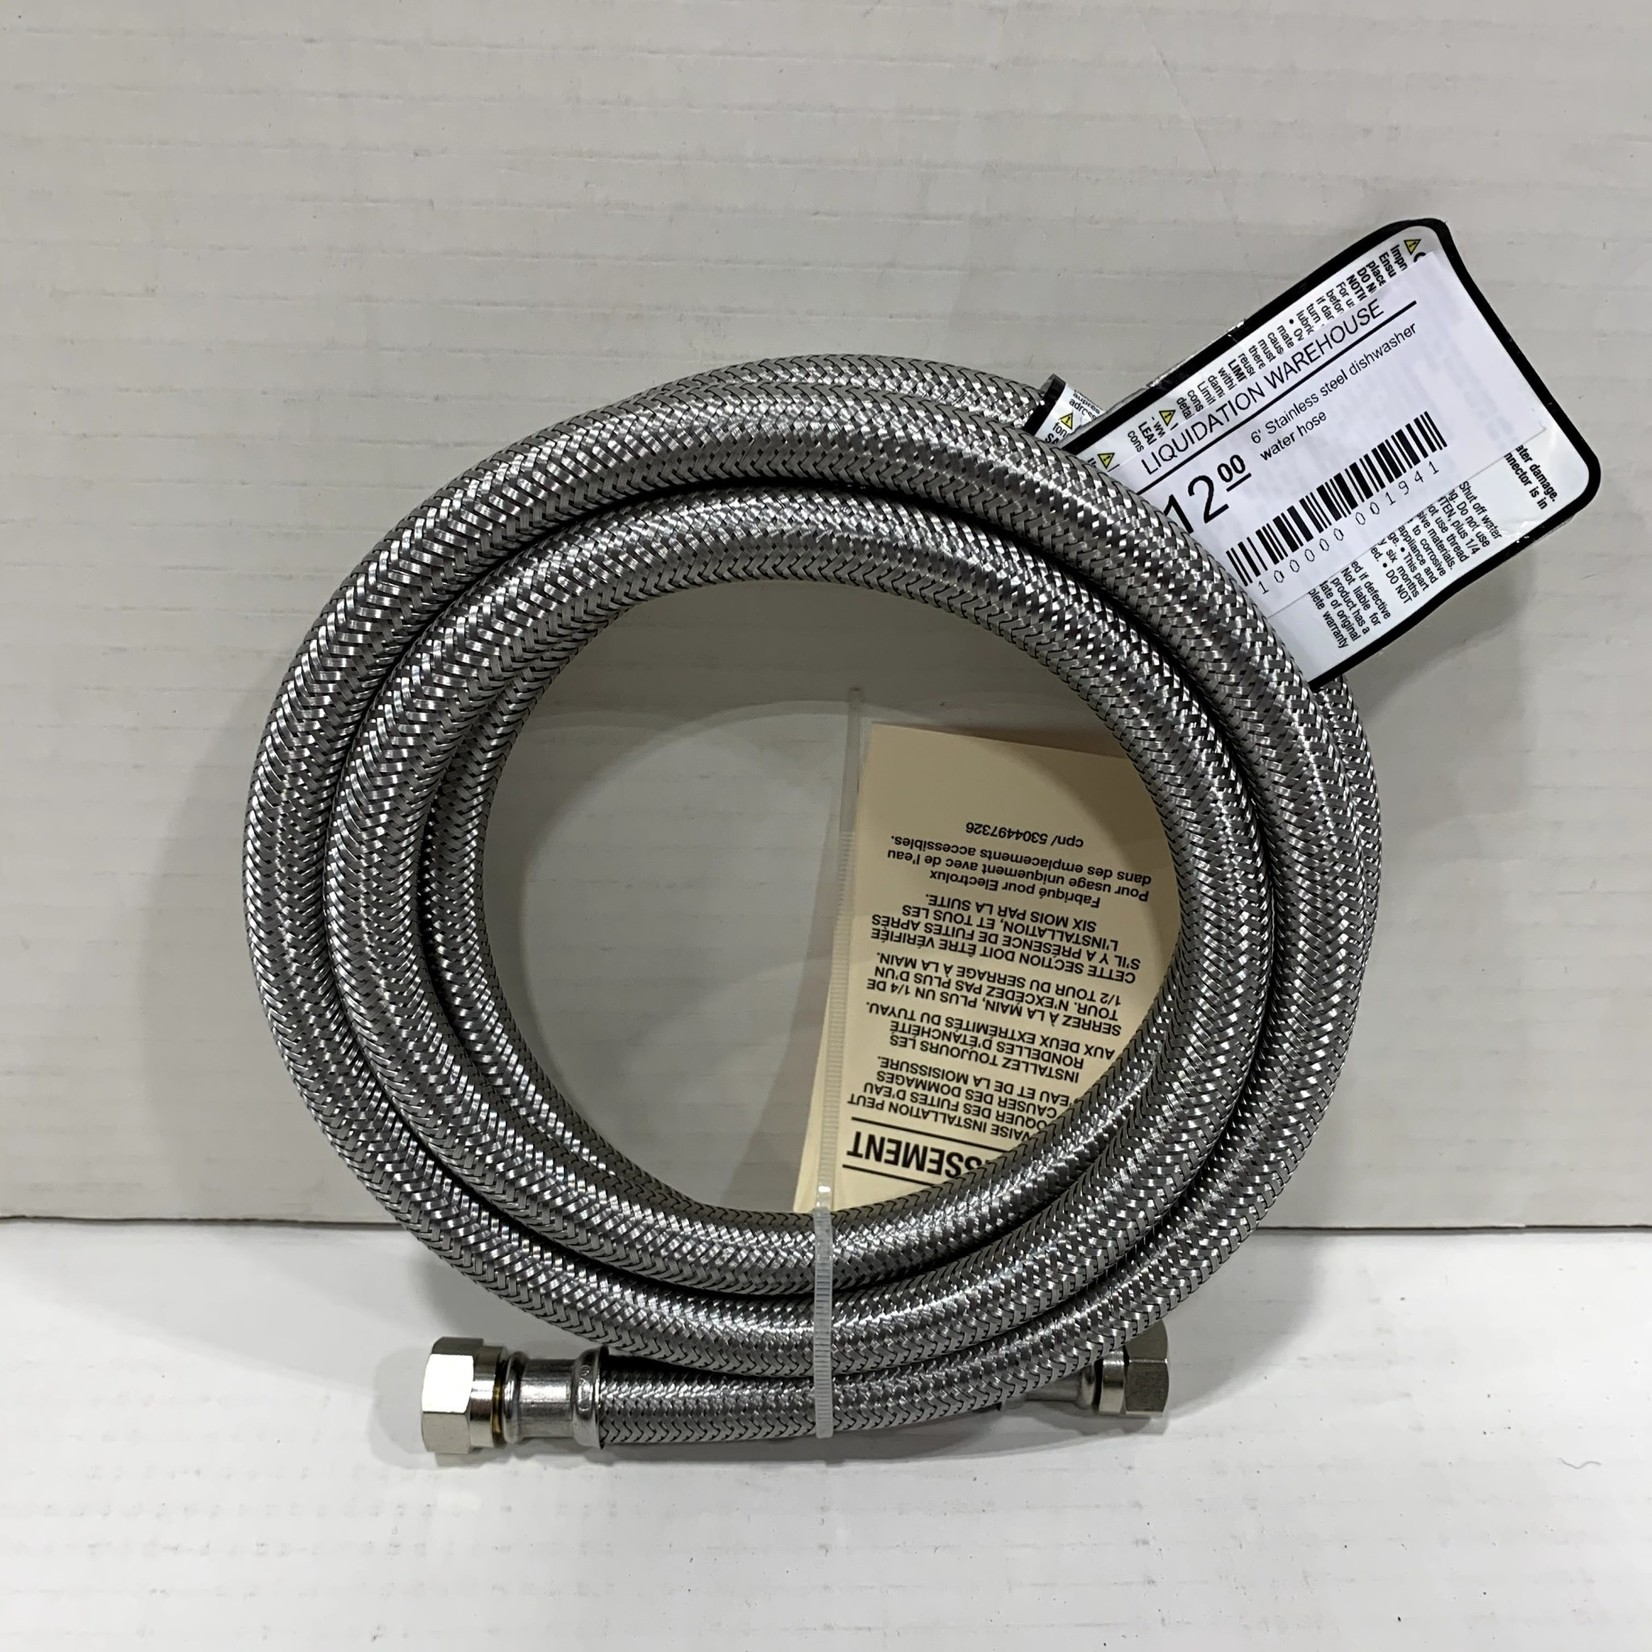 6' Stainless steel dishwasher water hose